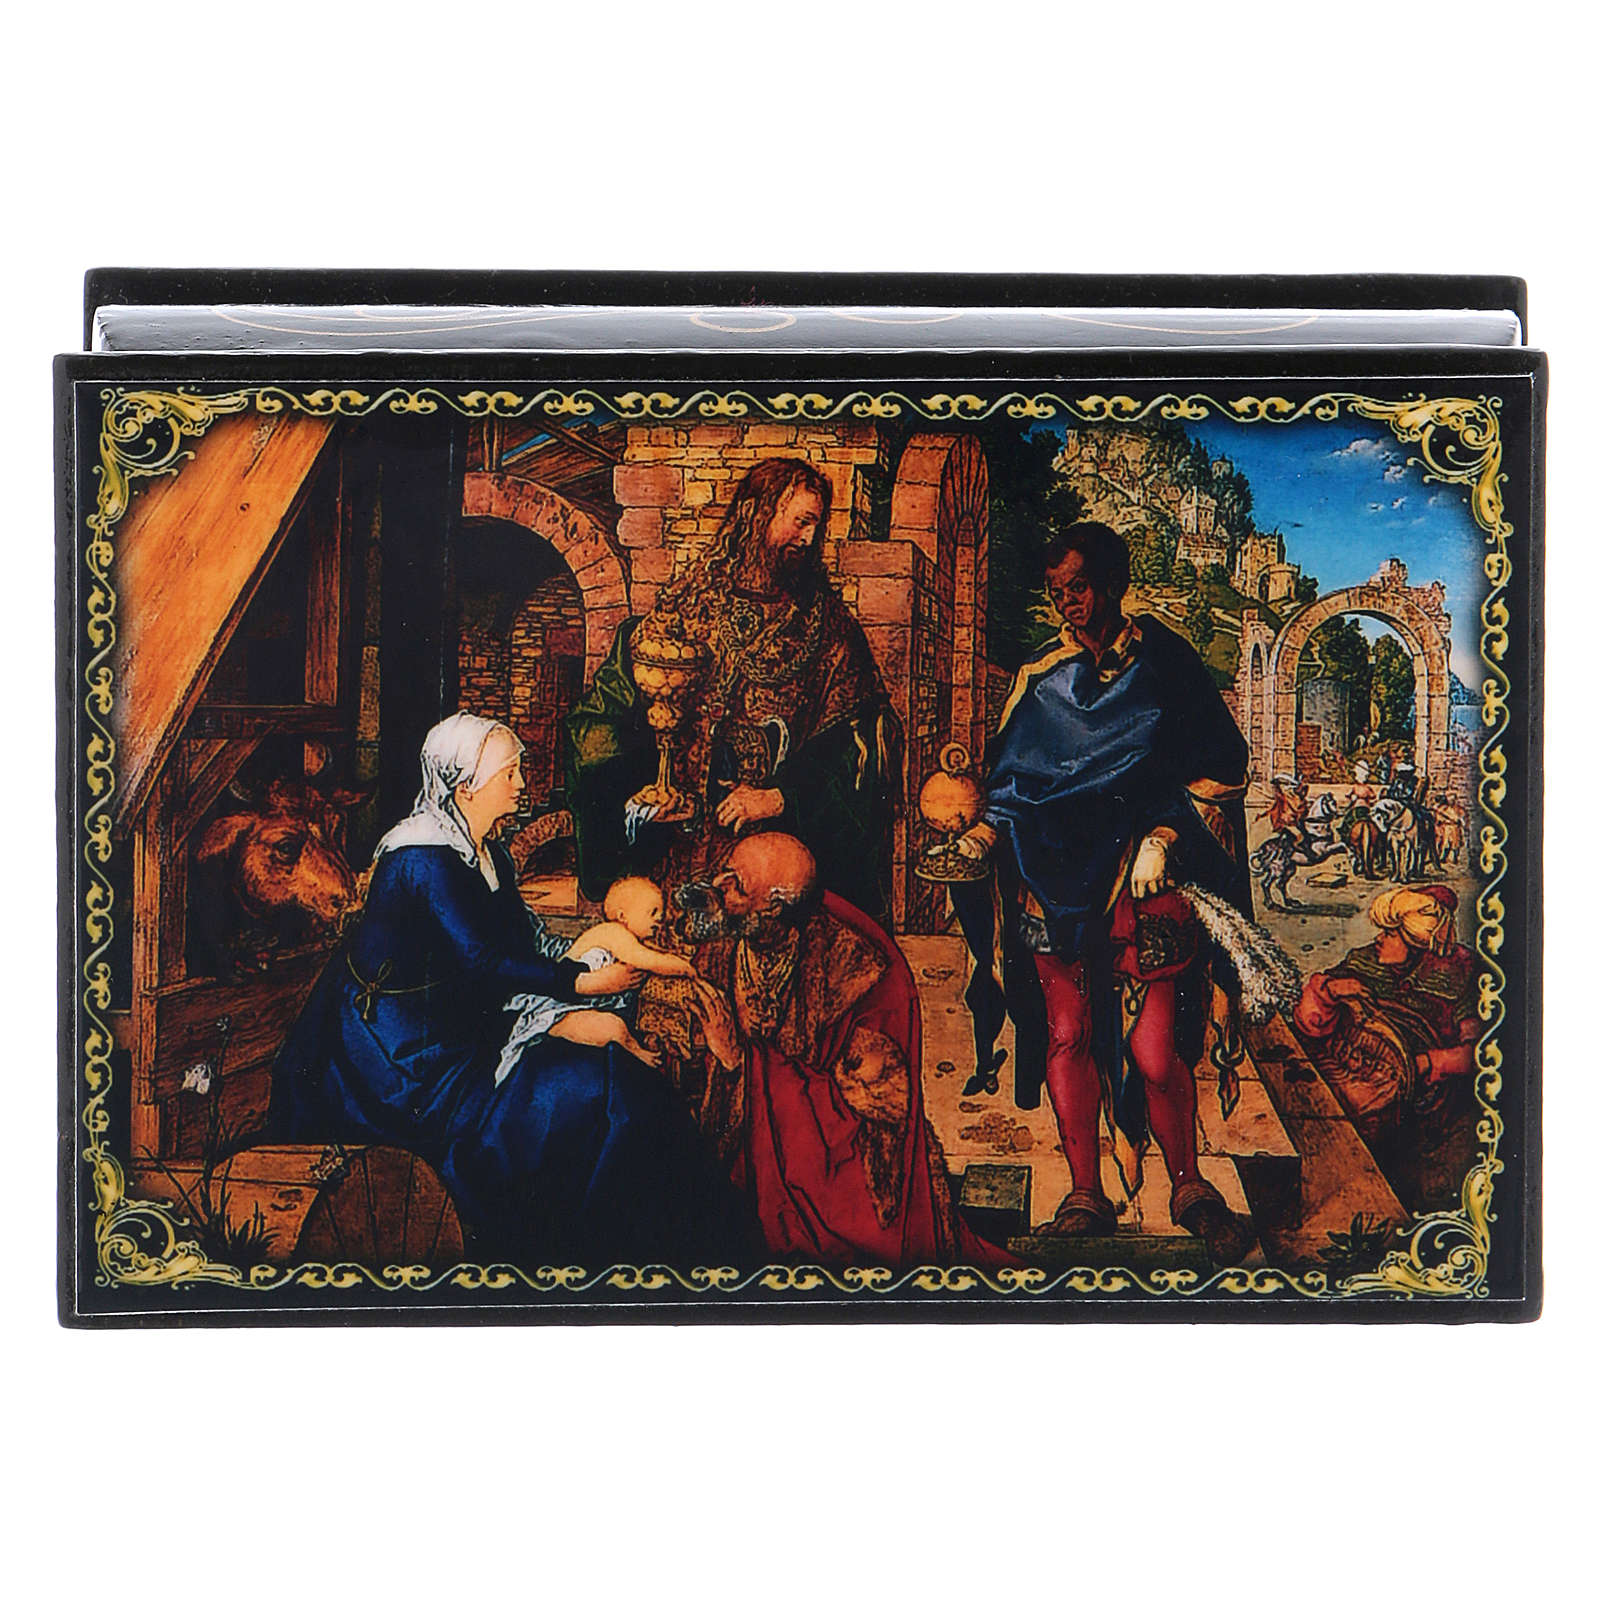 Russian lacquer box, Adoration of the Magi 9x6 cm 4